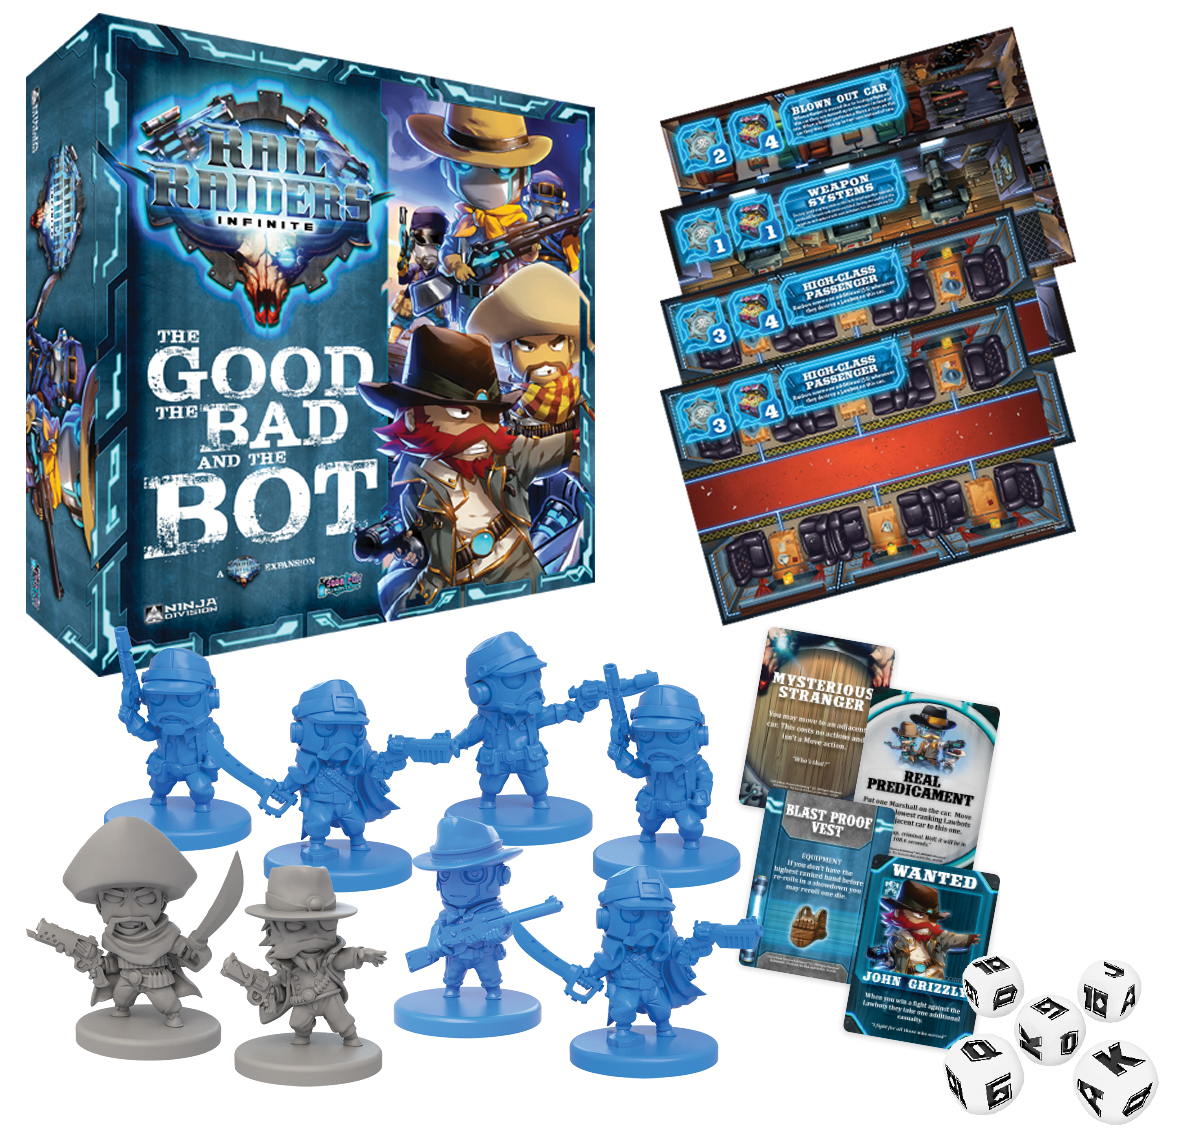 Rail Raiders Infinite: The Good, The Bad, And The Bot Box Front